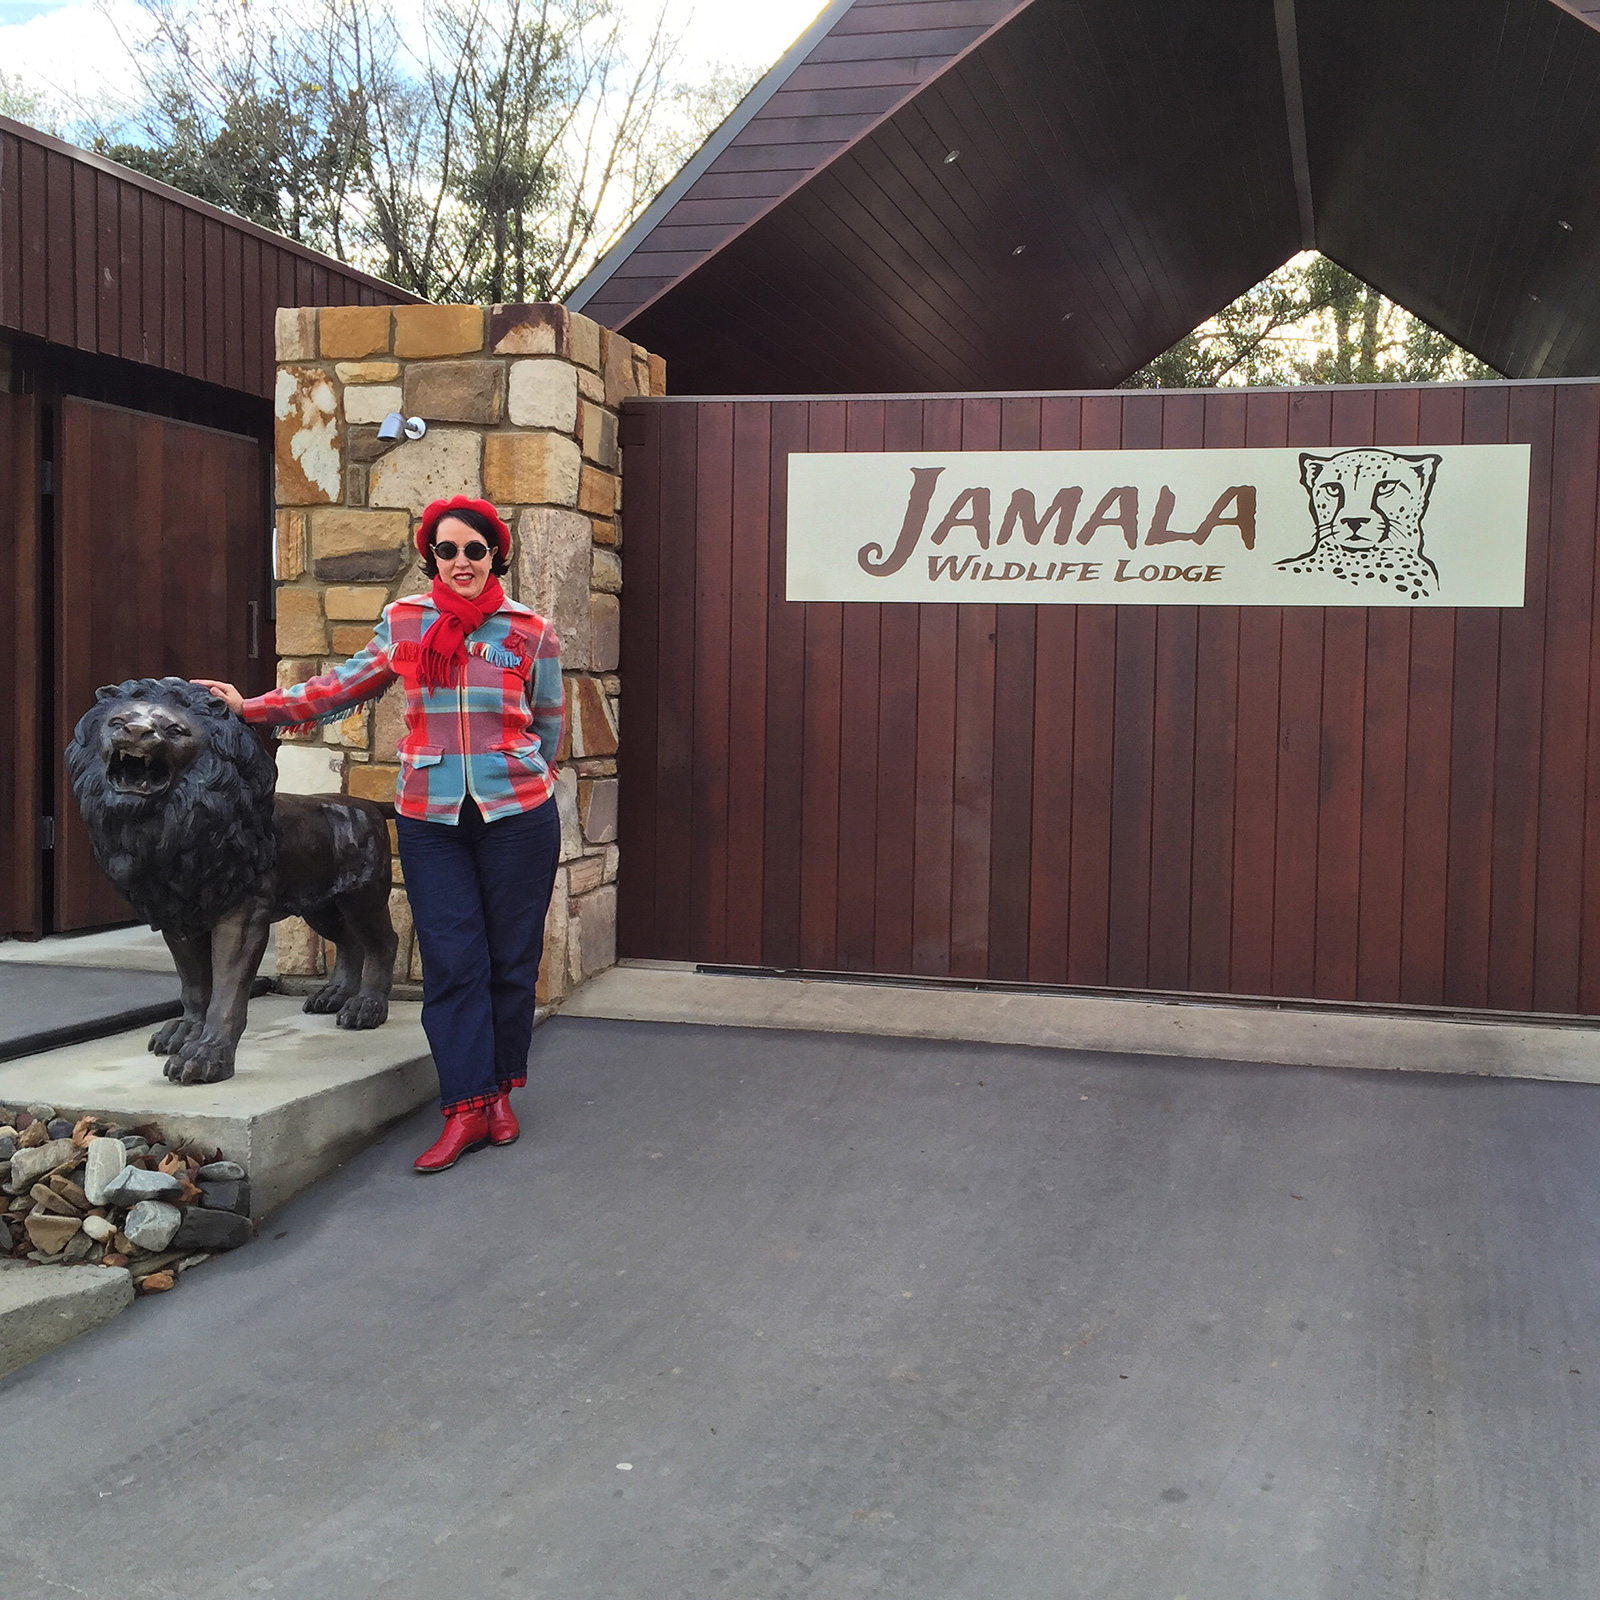 Going on safari at Jamala Wildlife Lodge